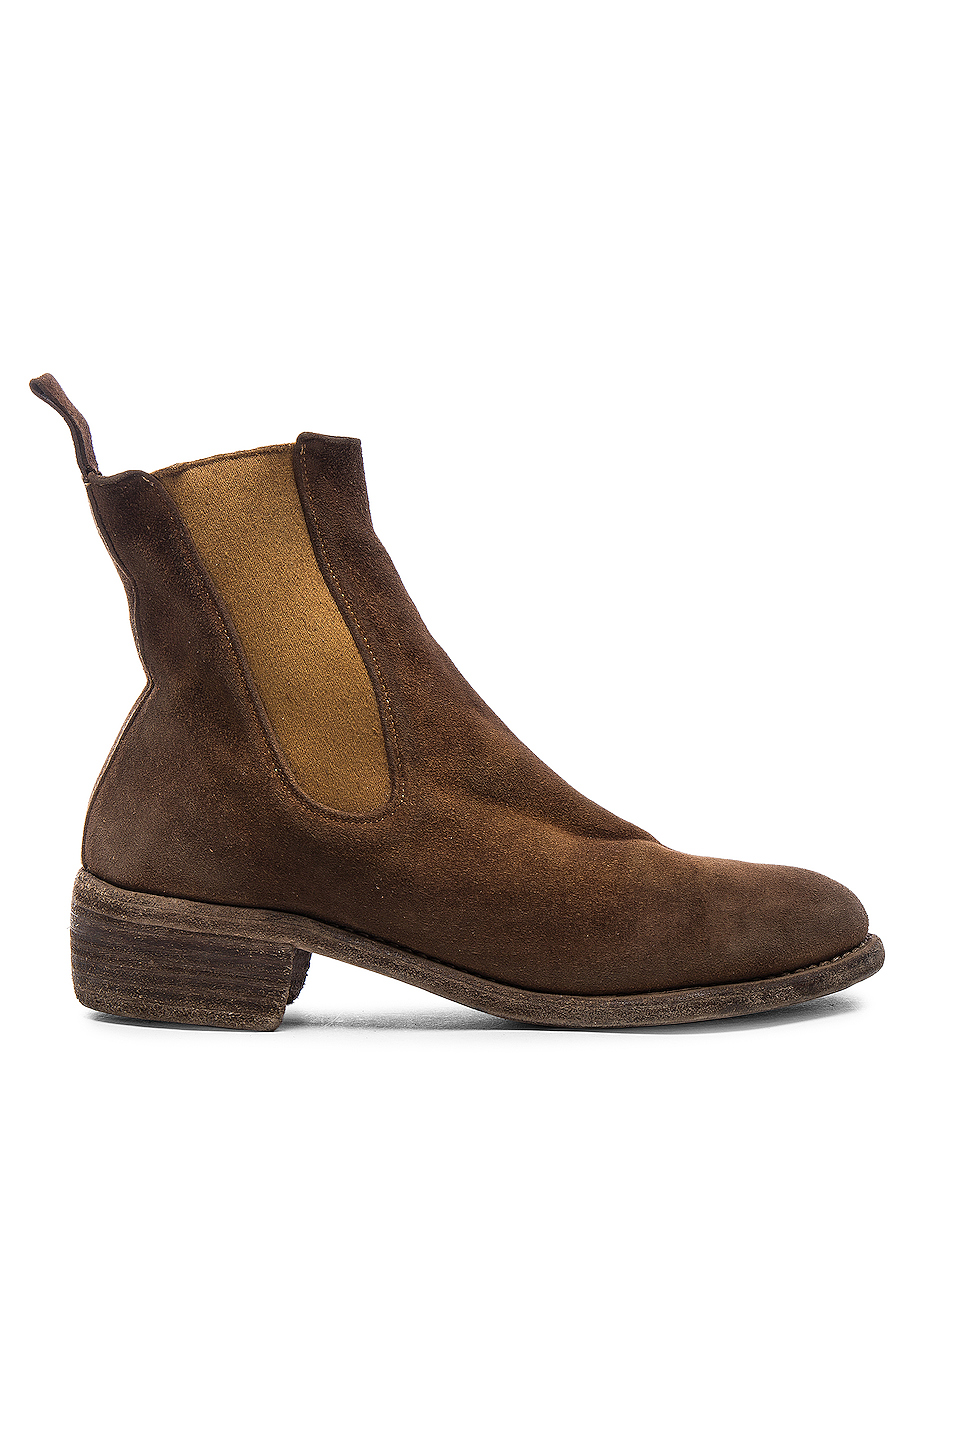 Guidi Stag Chelsea Boots in Brown